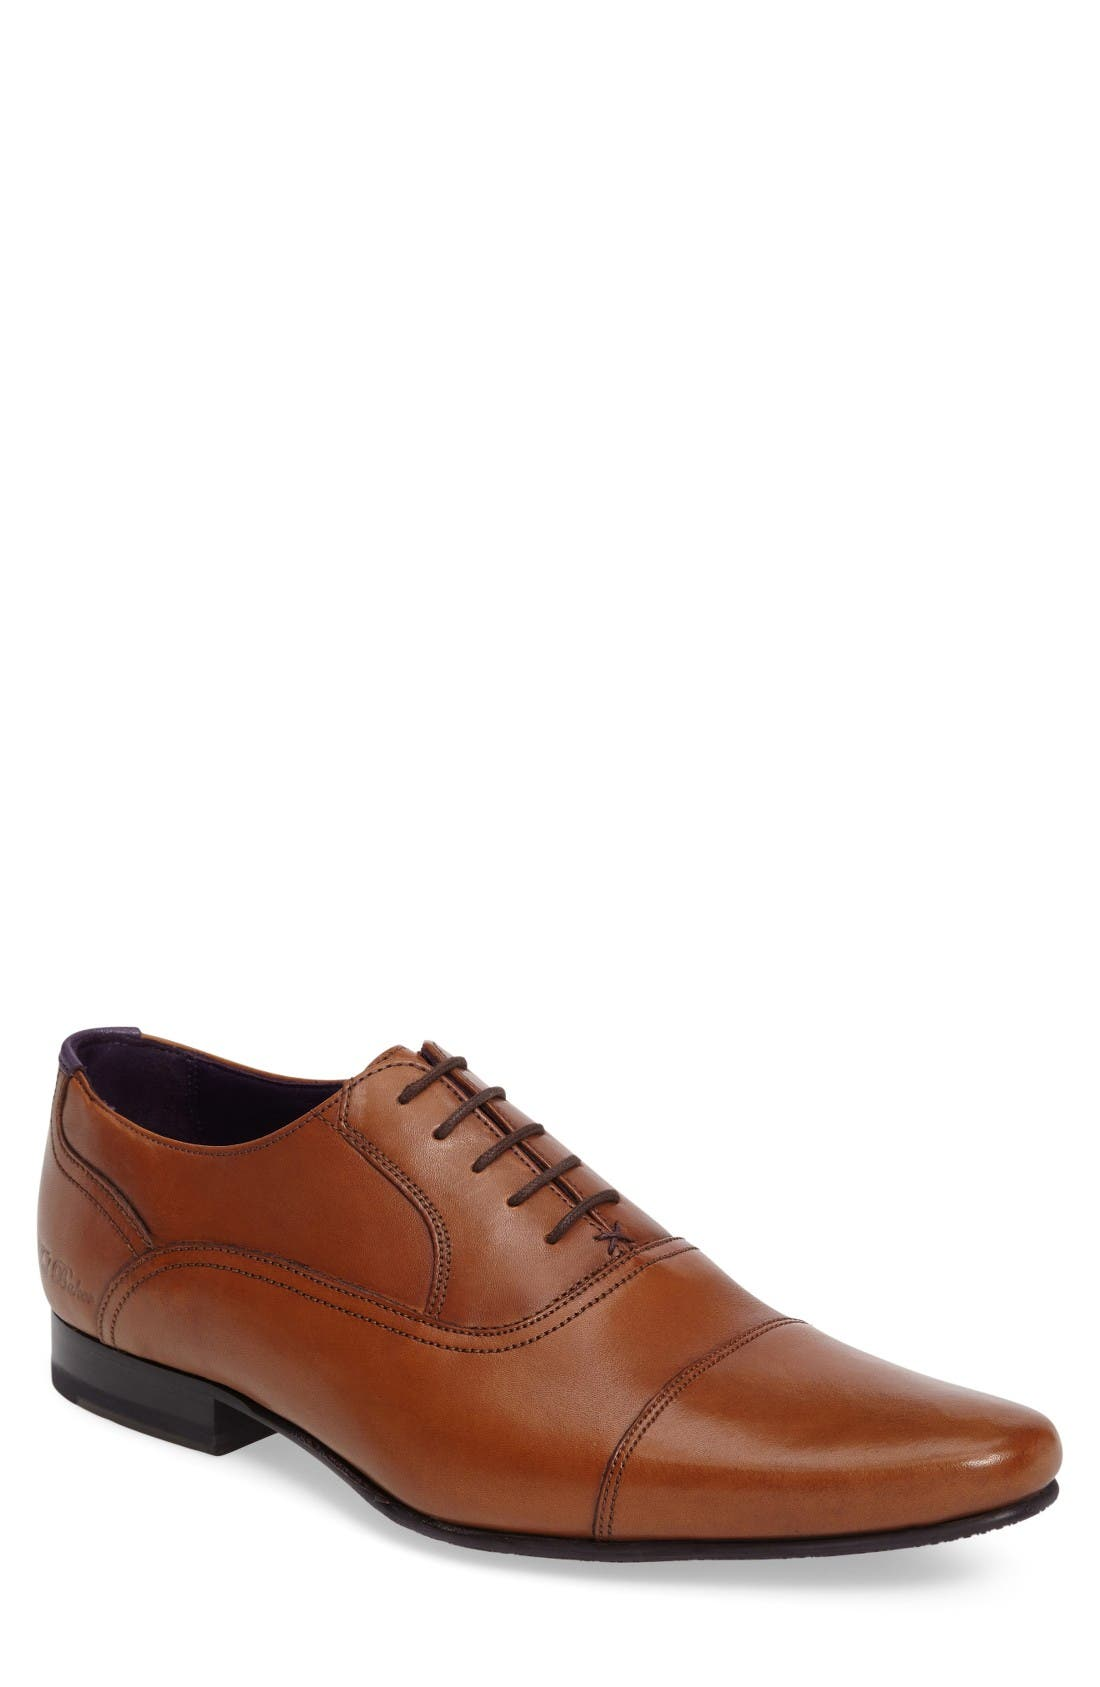 Rogrr 3 Cap Toe Oxford,                         Main,                         color, Tan Leather